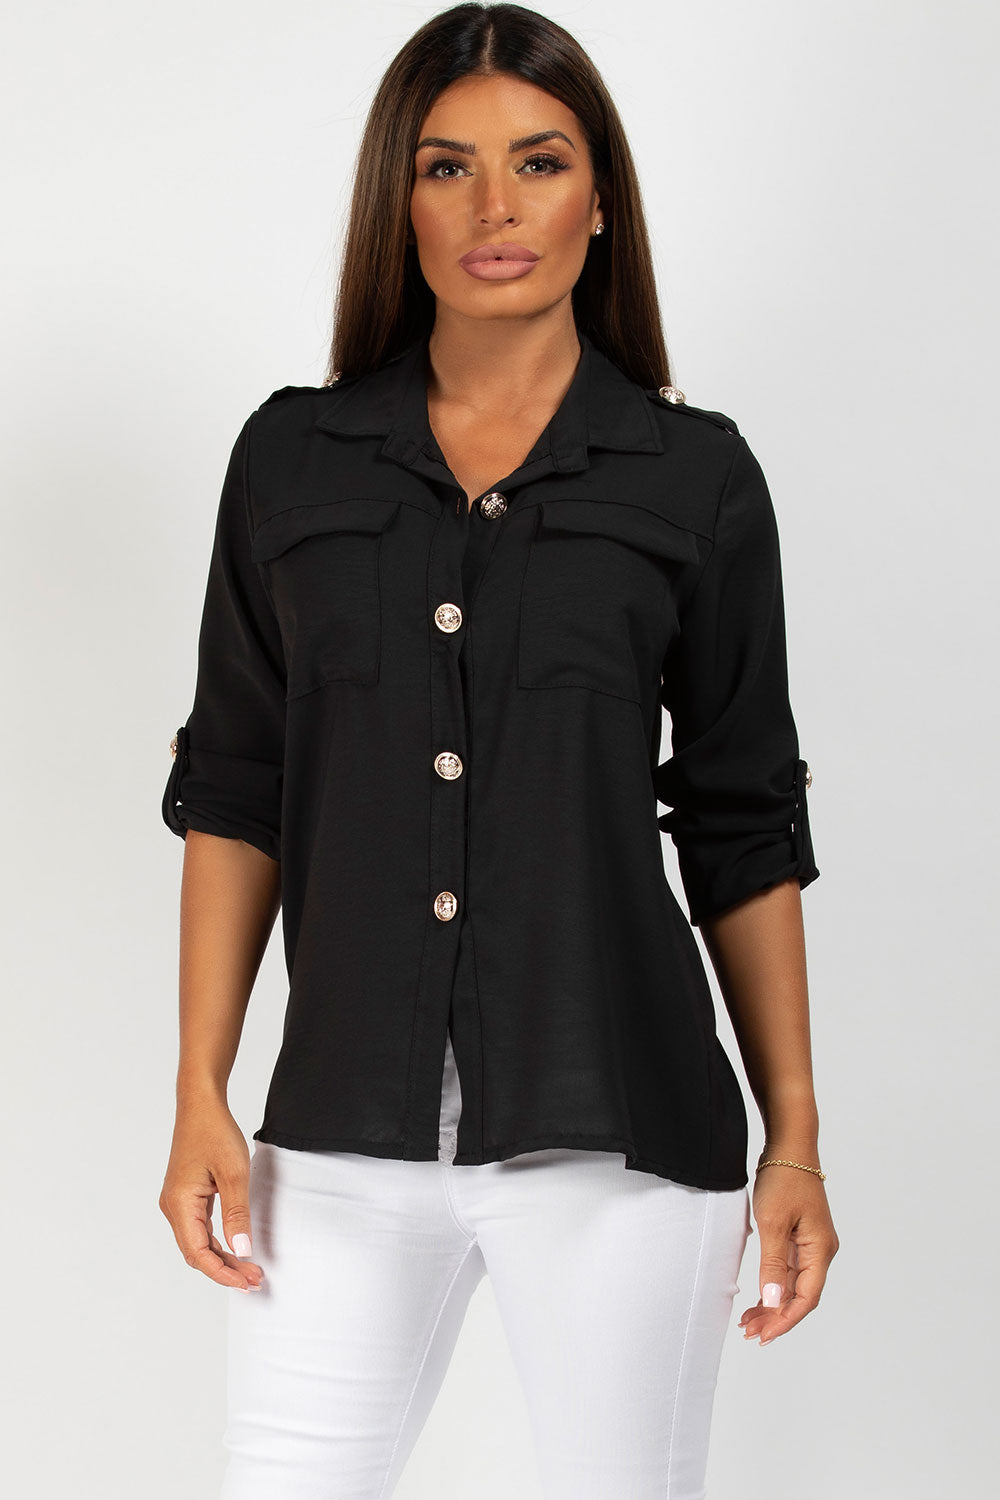 black shirt with gold button detail